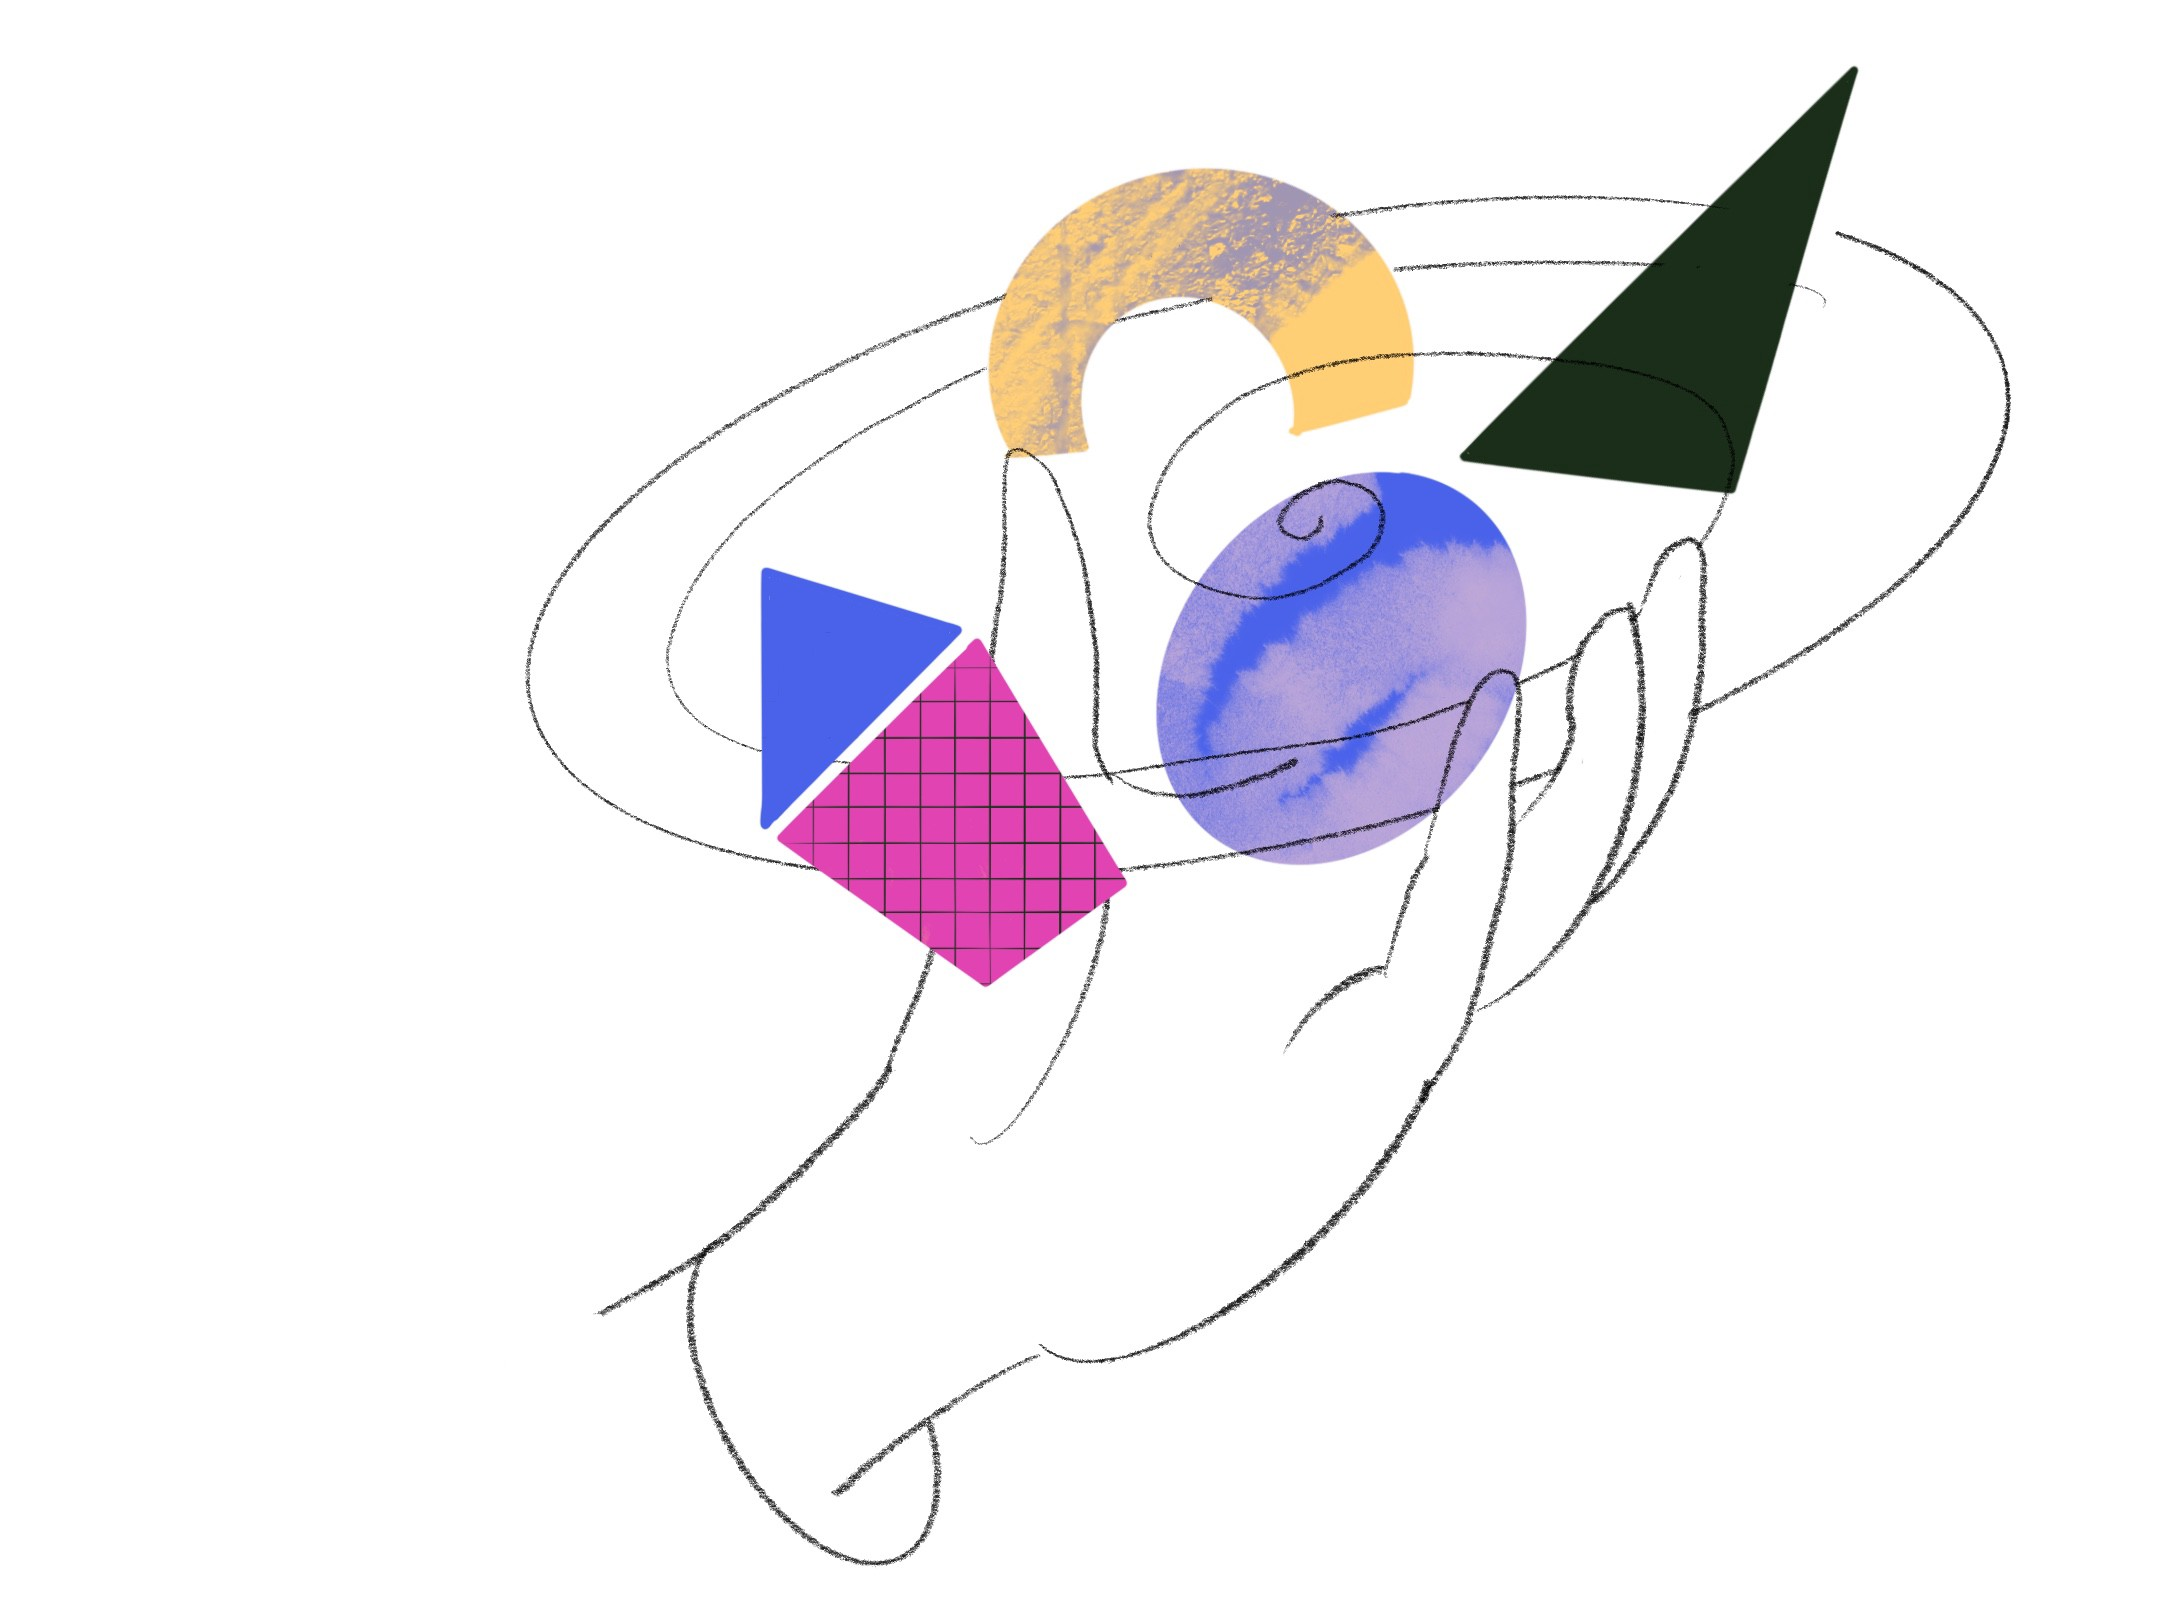 An abstract illustration of a back and white hand. Colorful shapes with patterns float above the hand like planets.